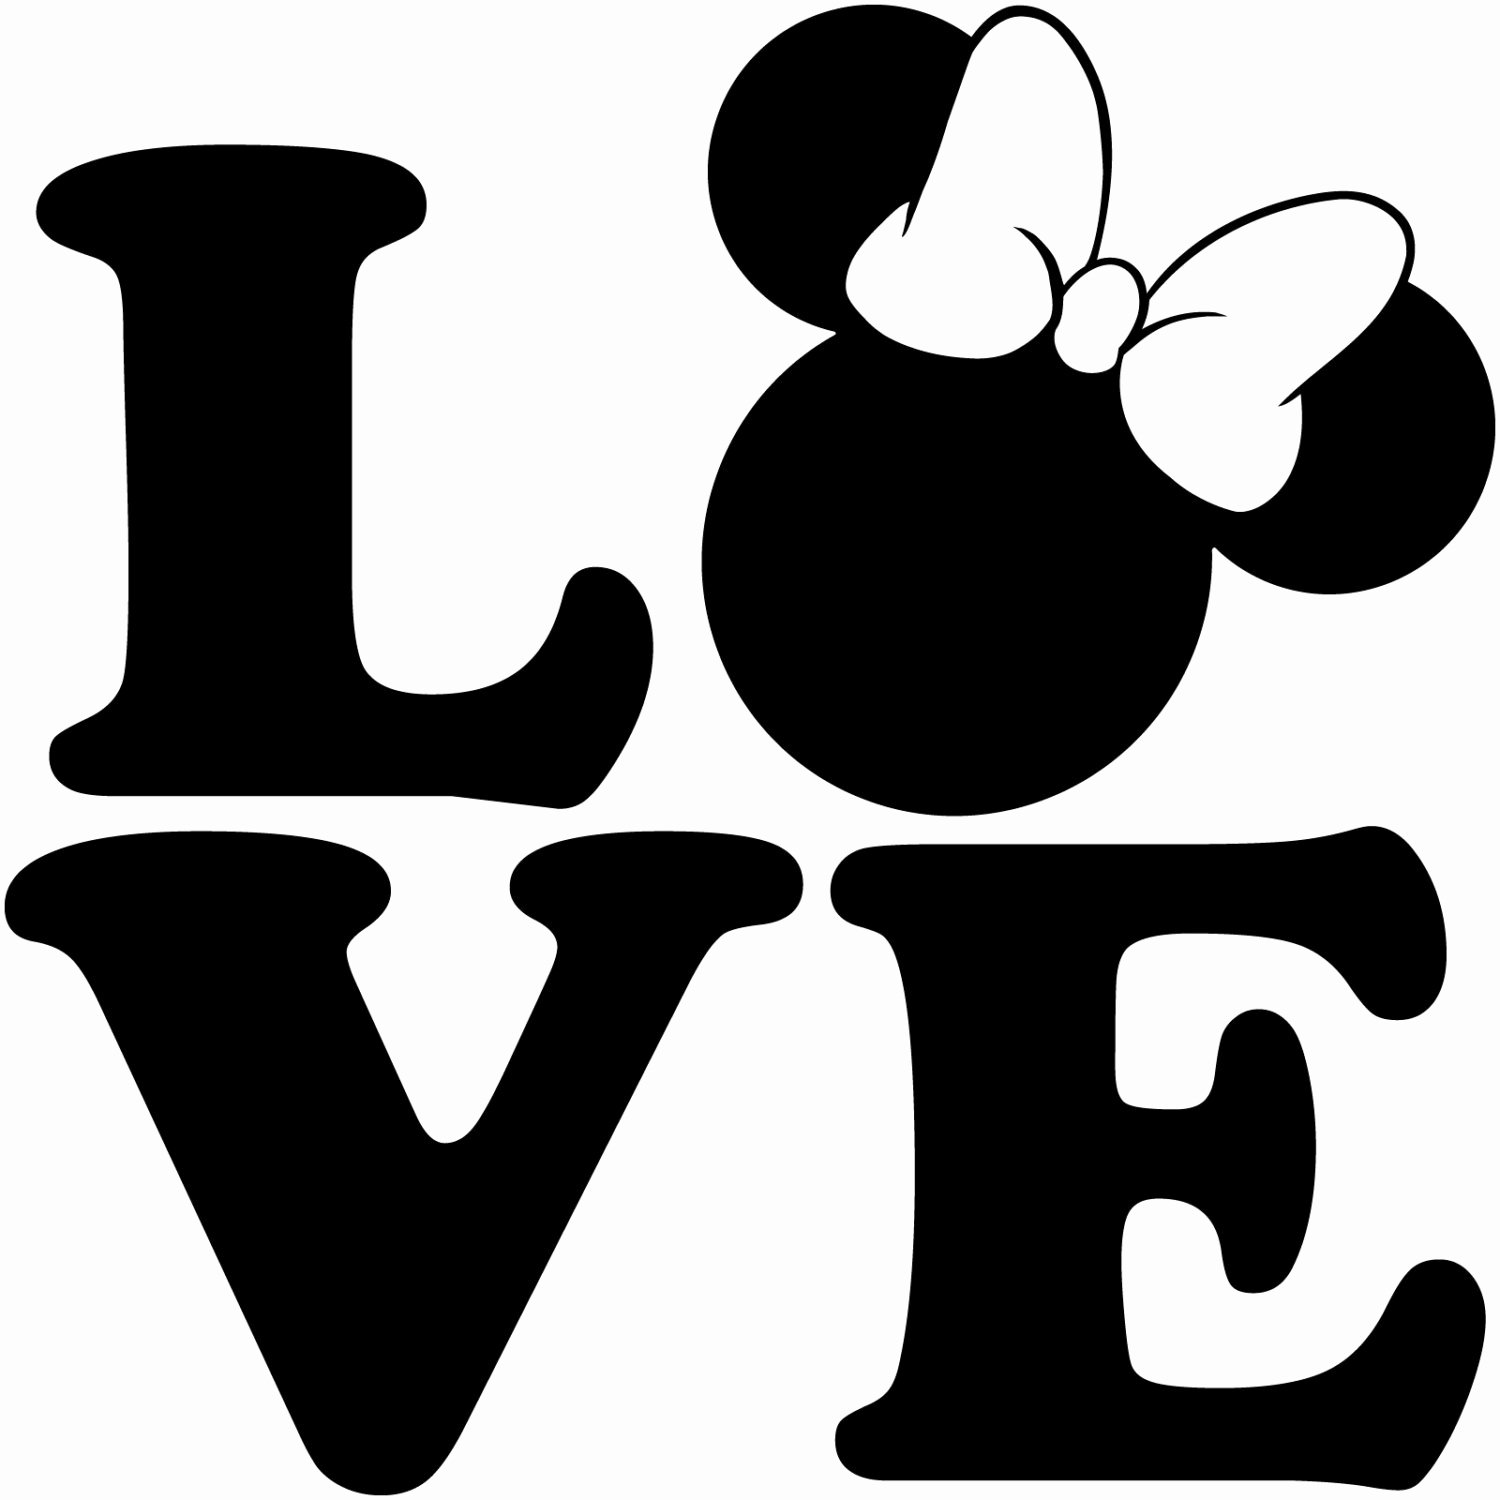 Mickey Mouse Silhouette Printable Unique Minnie Mouse Head Silhouette at Getdrawings